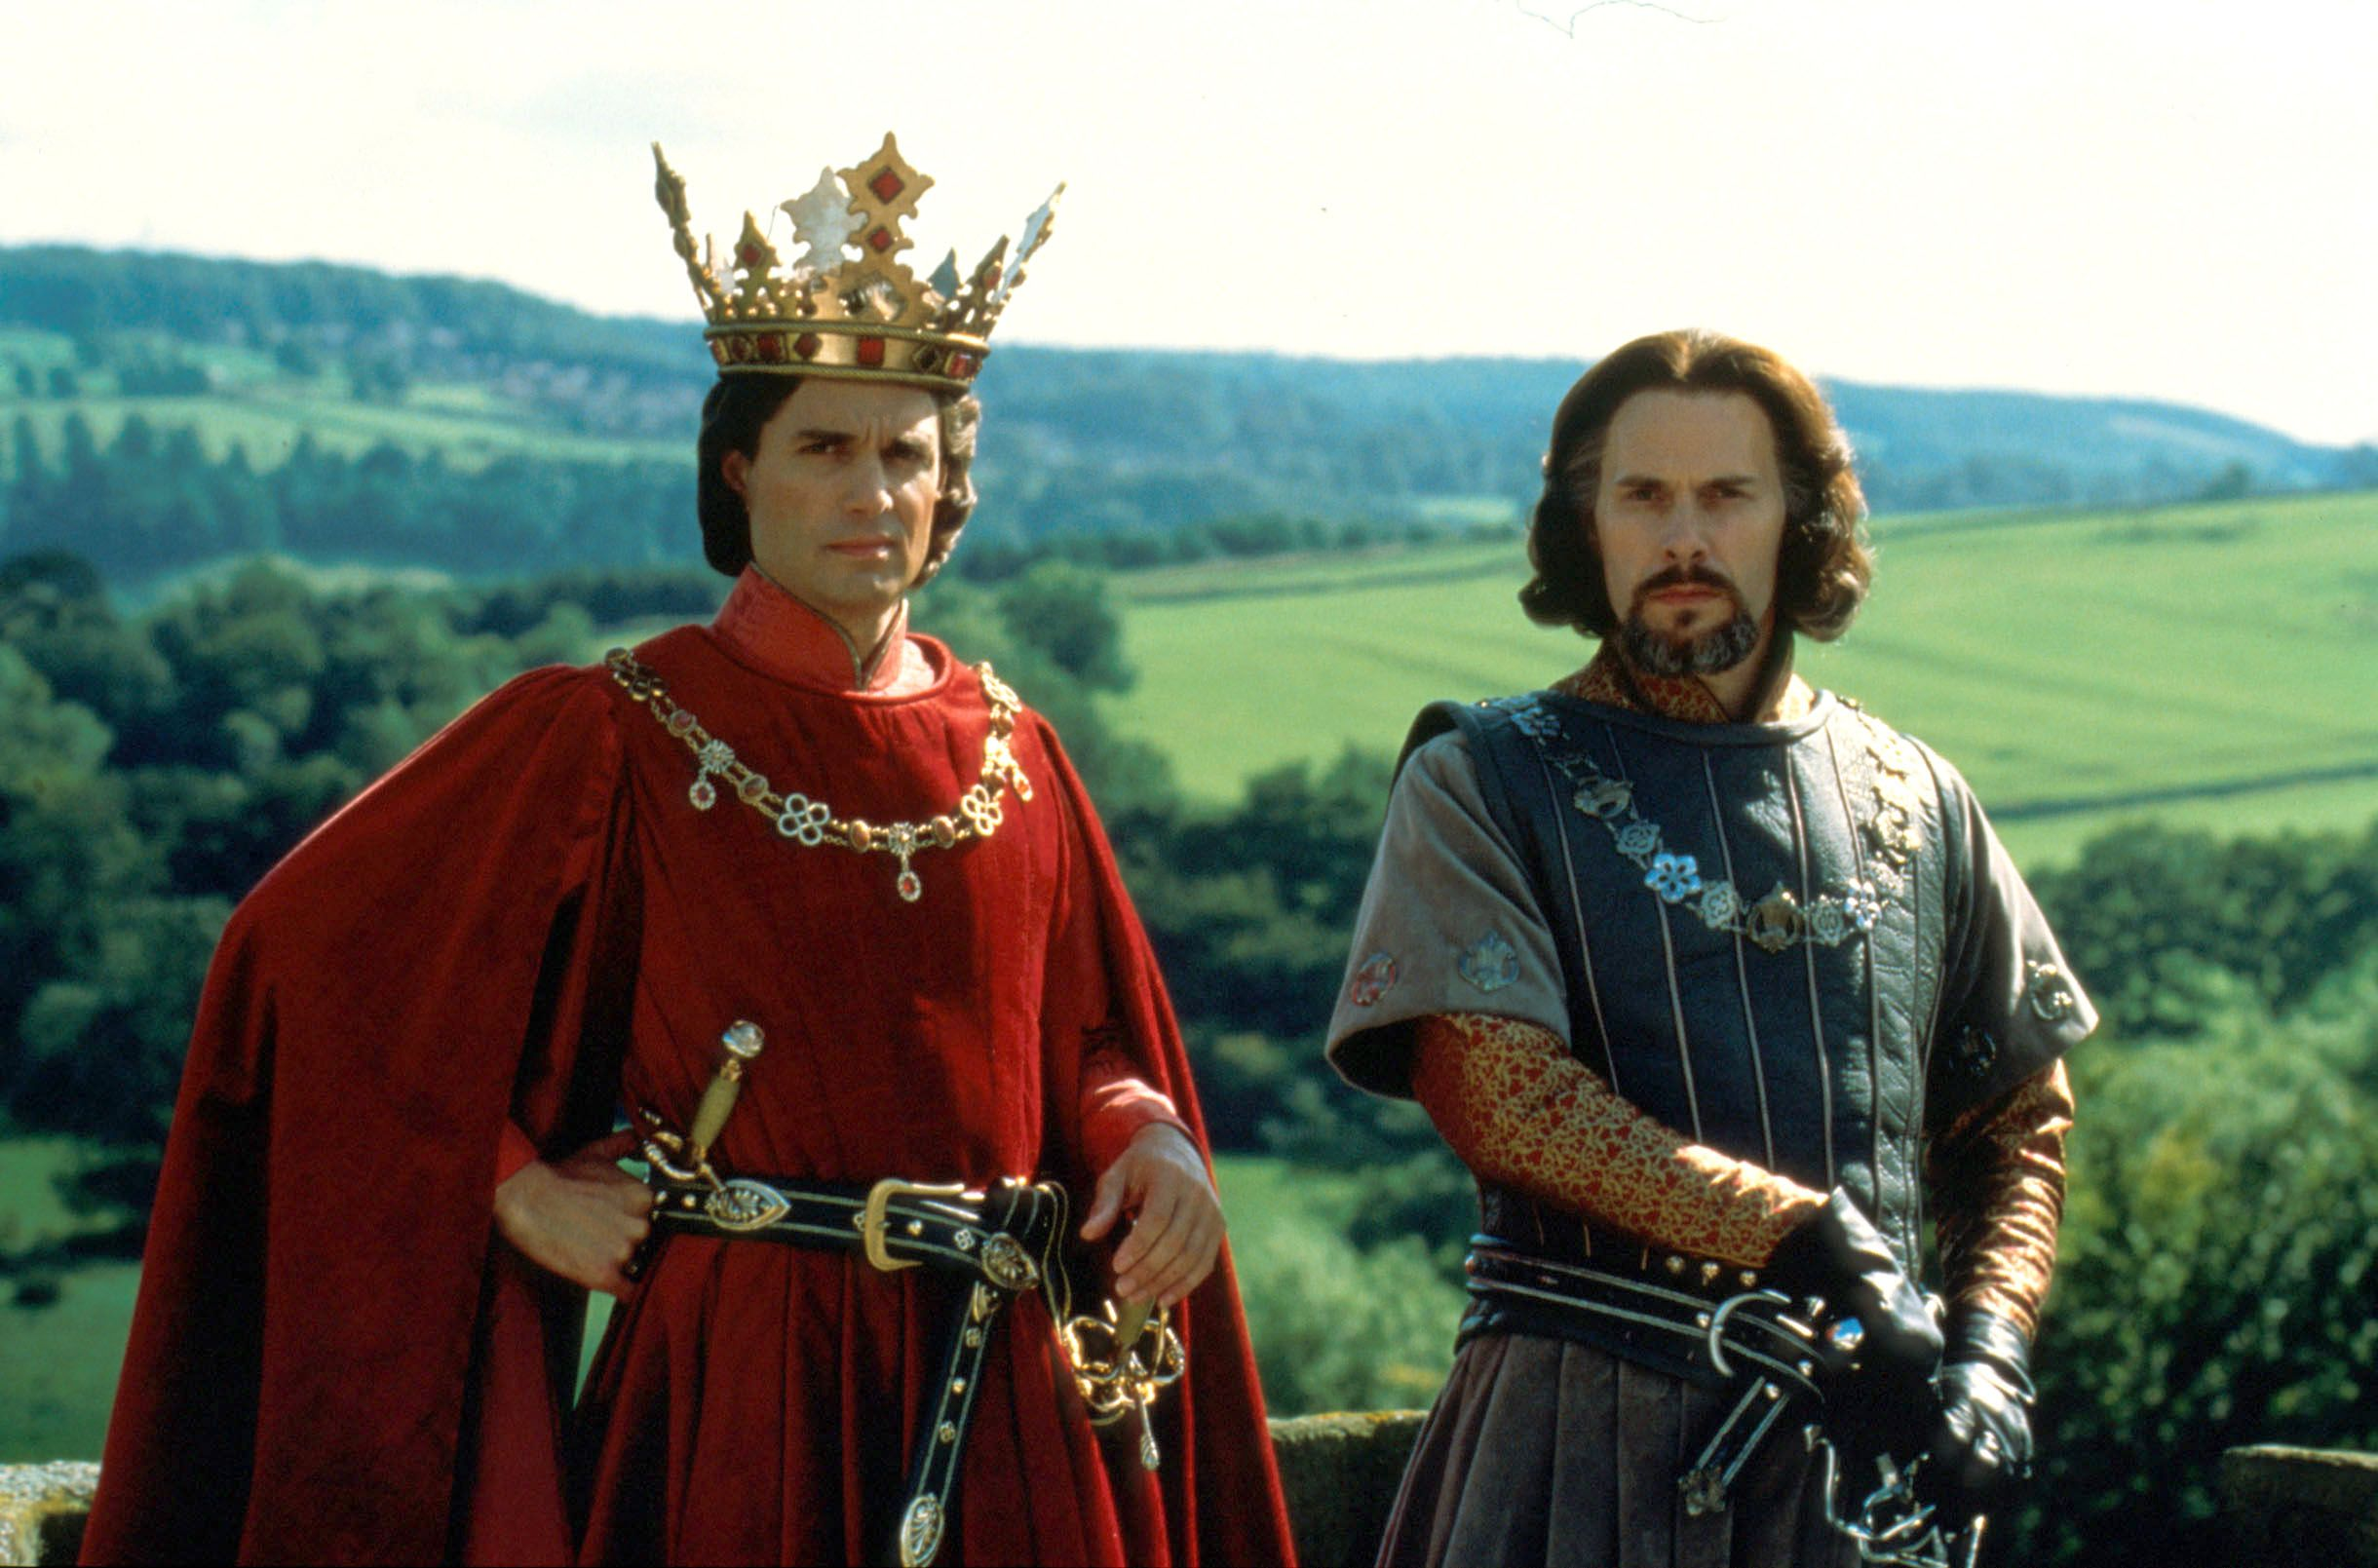 8. The Princess Bride